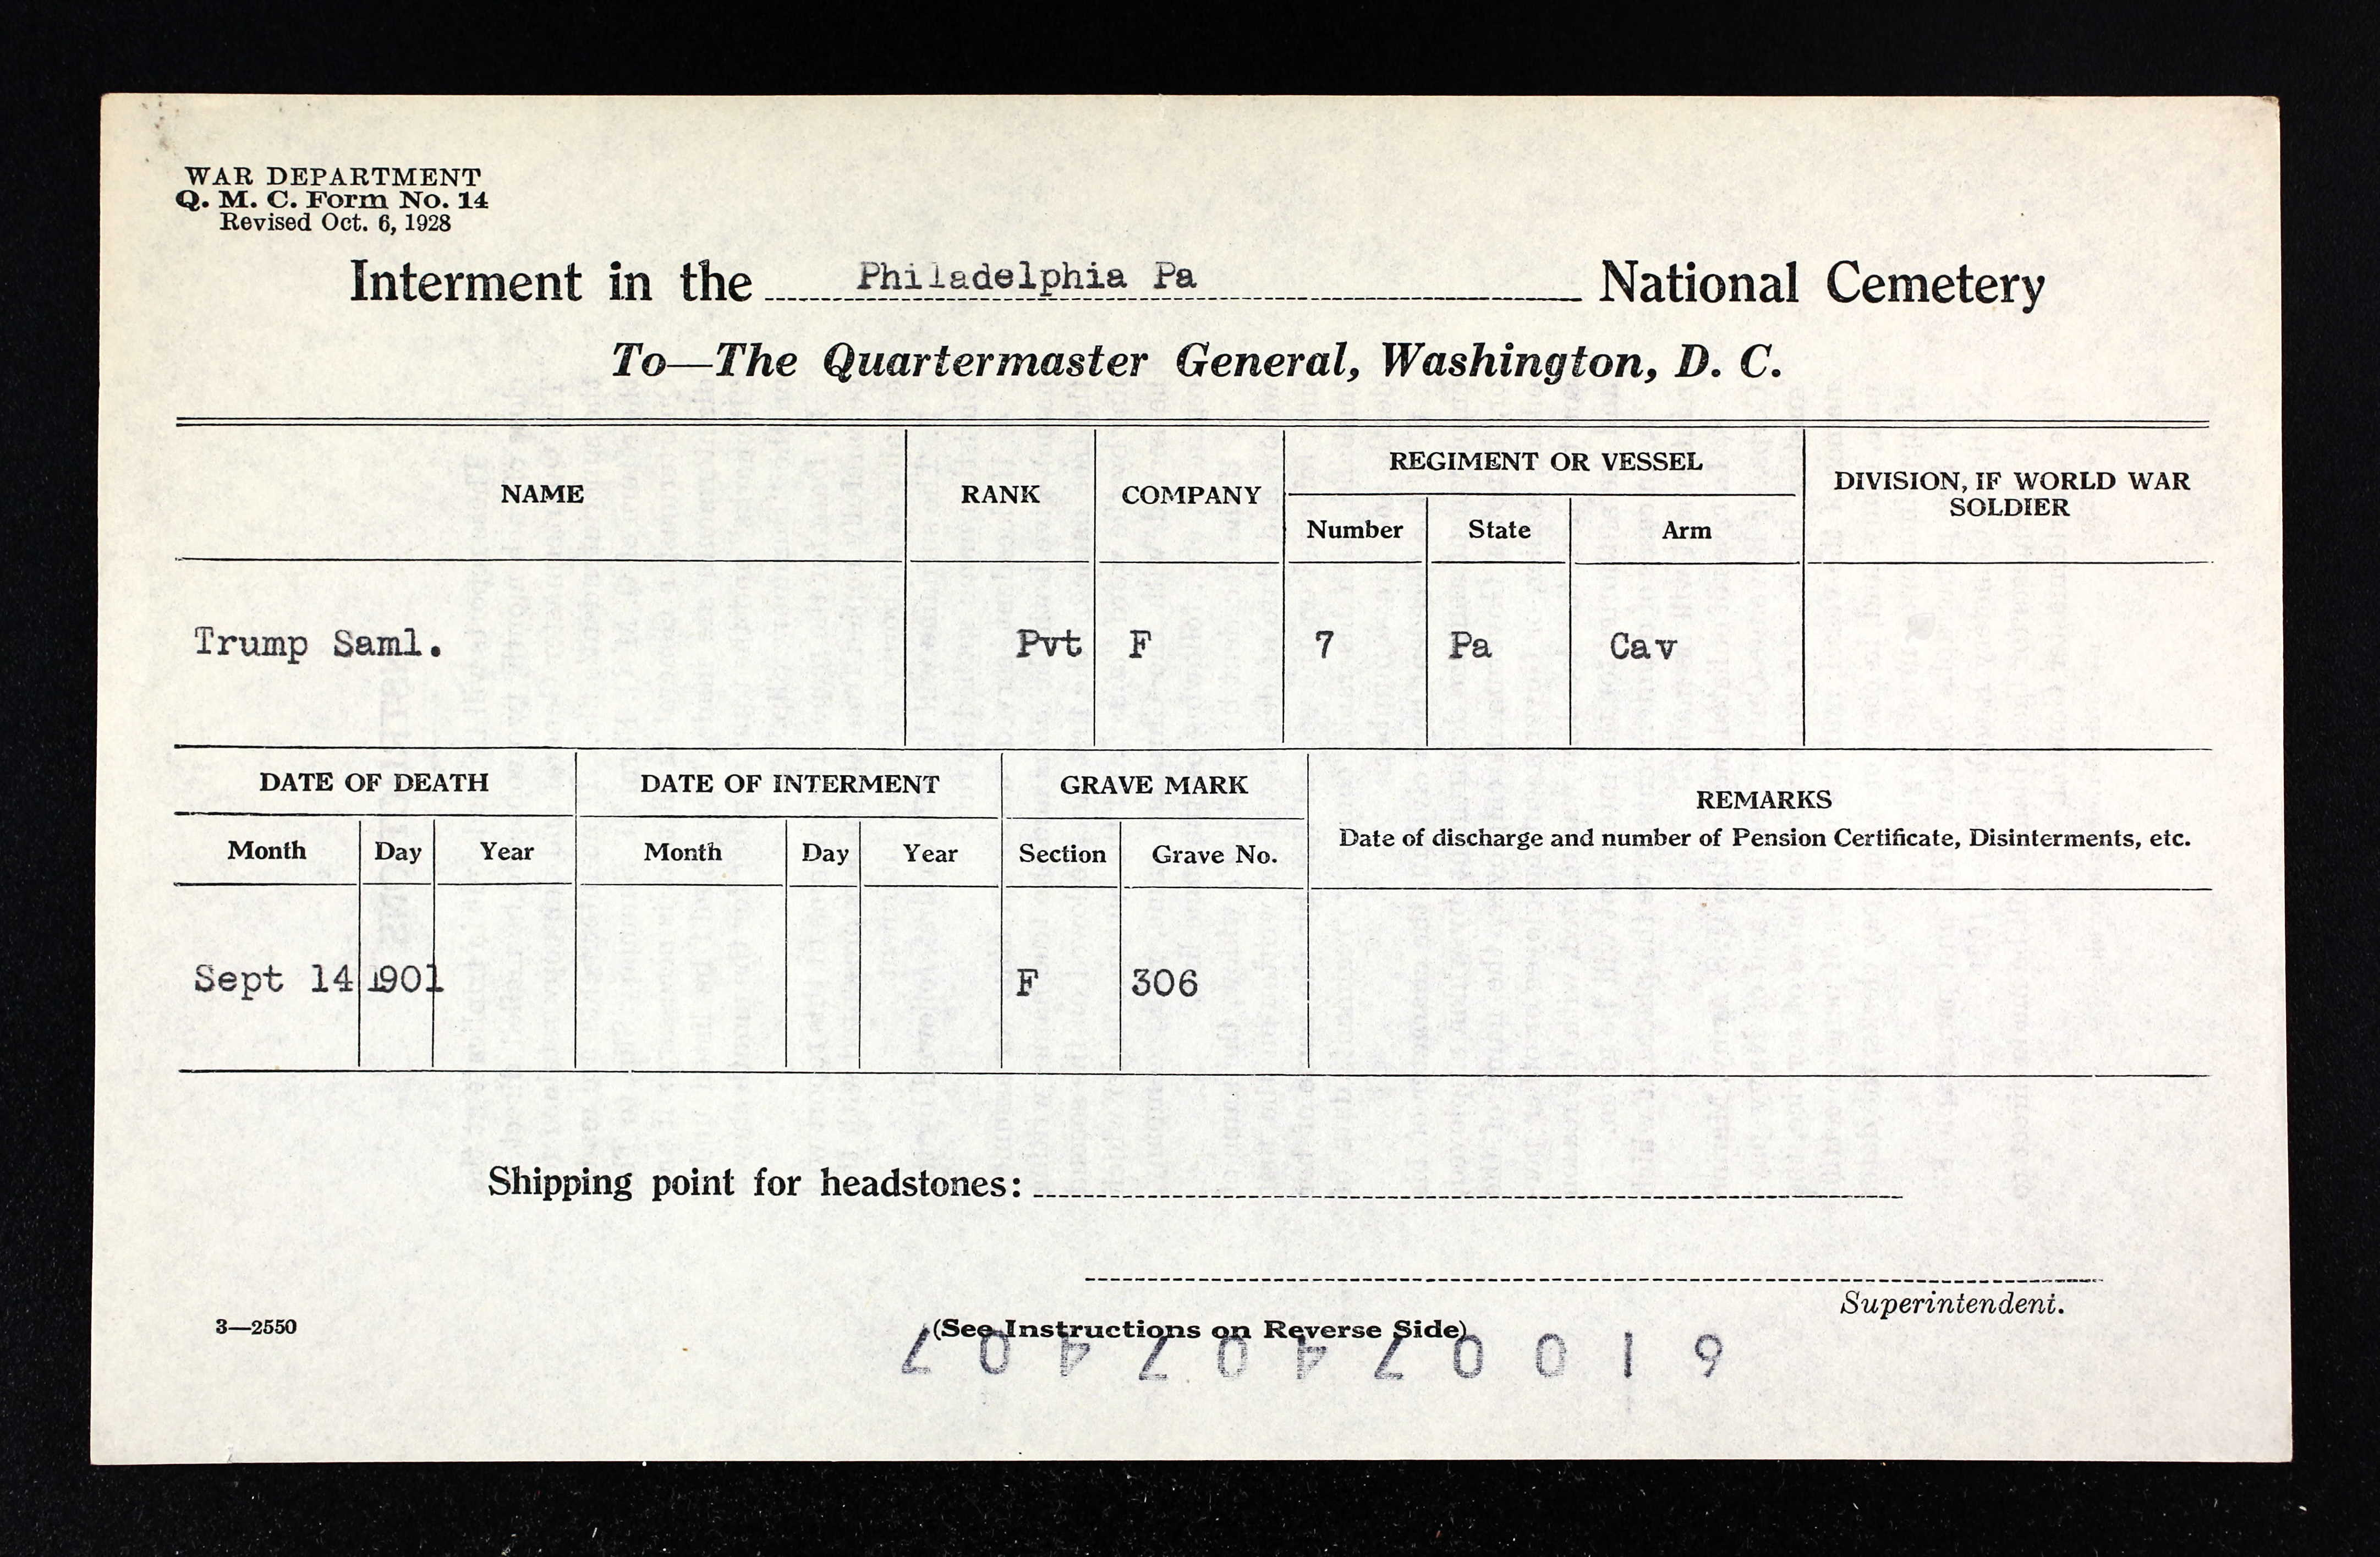 Civil war blog samuel trump boatman and 7th pennsylvania cavalry a philadelphia death certificate for samuel trump confirms the death date but gives his birth date as january 1827 a registry from the national cemetery aiddatafo Image collections